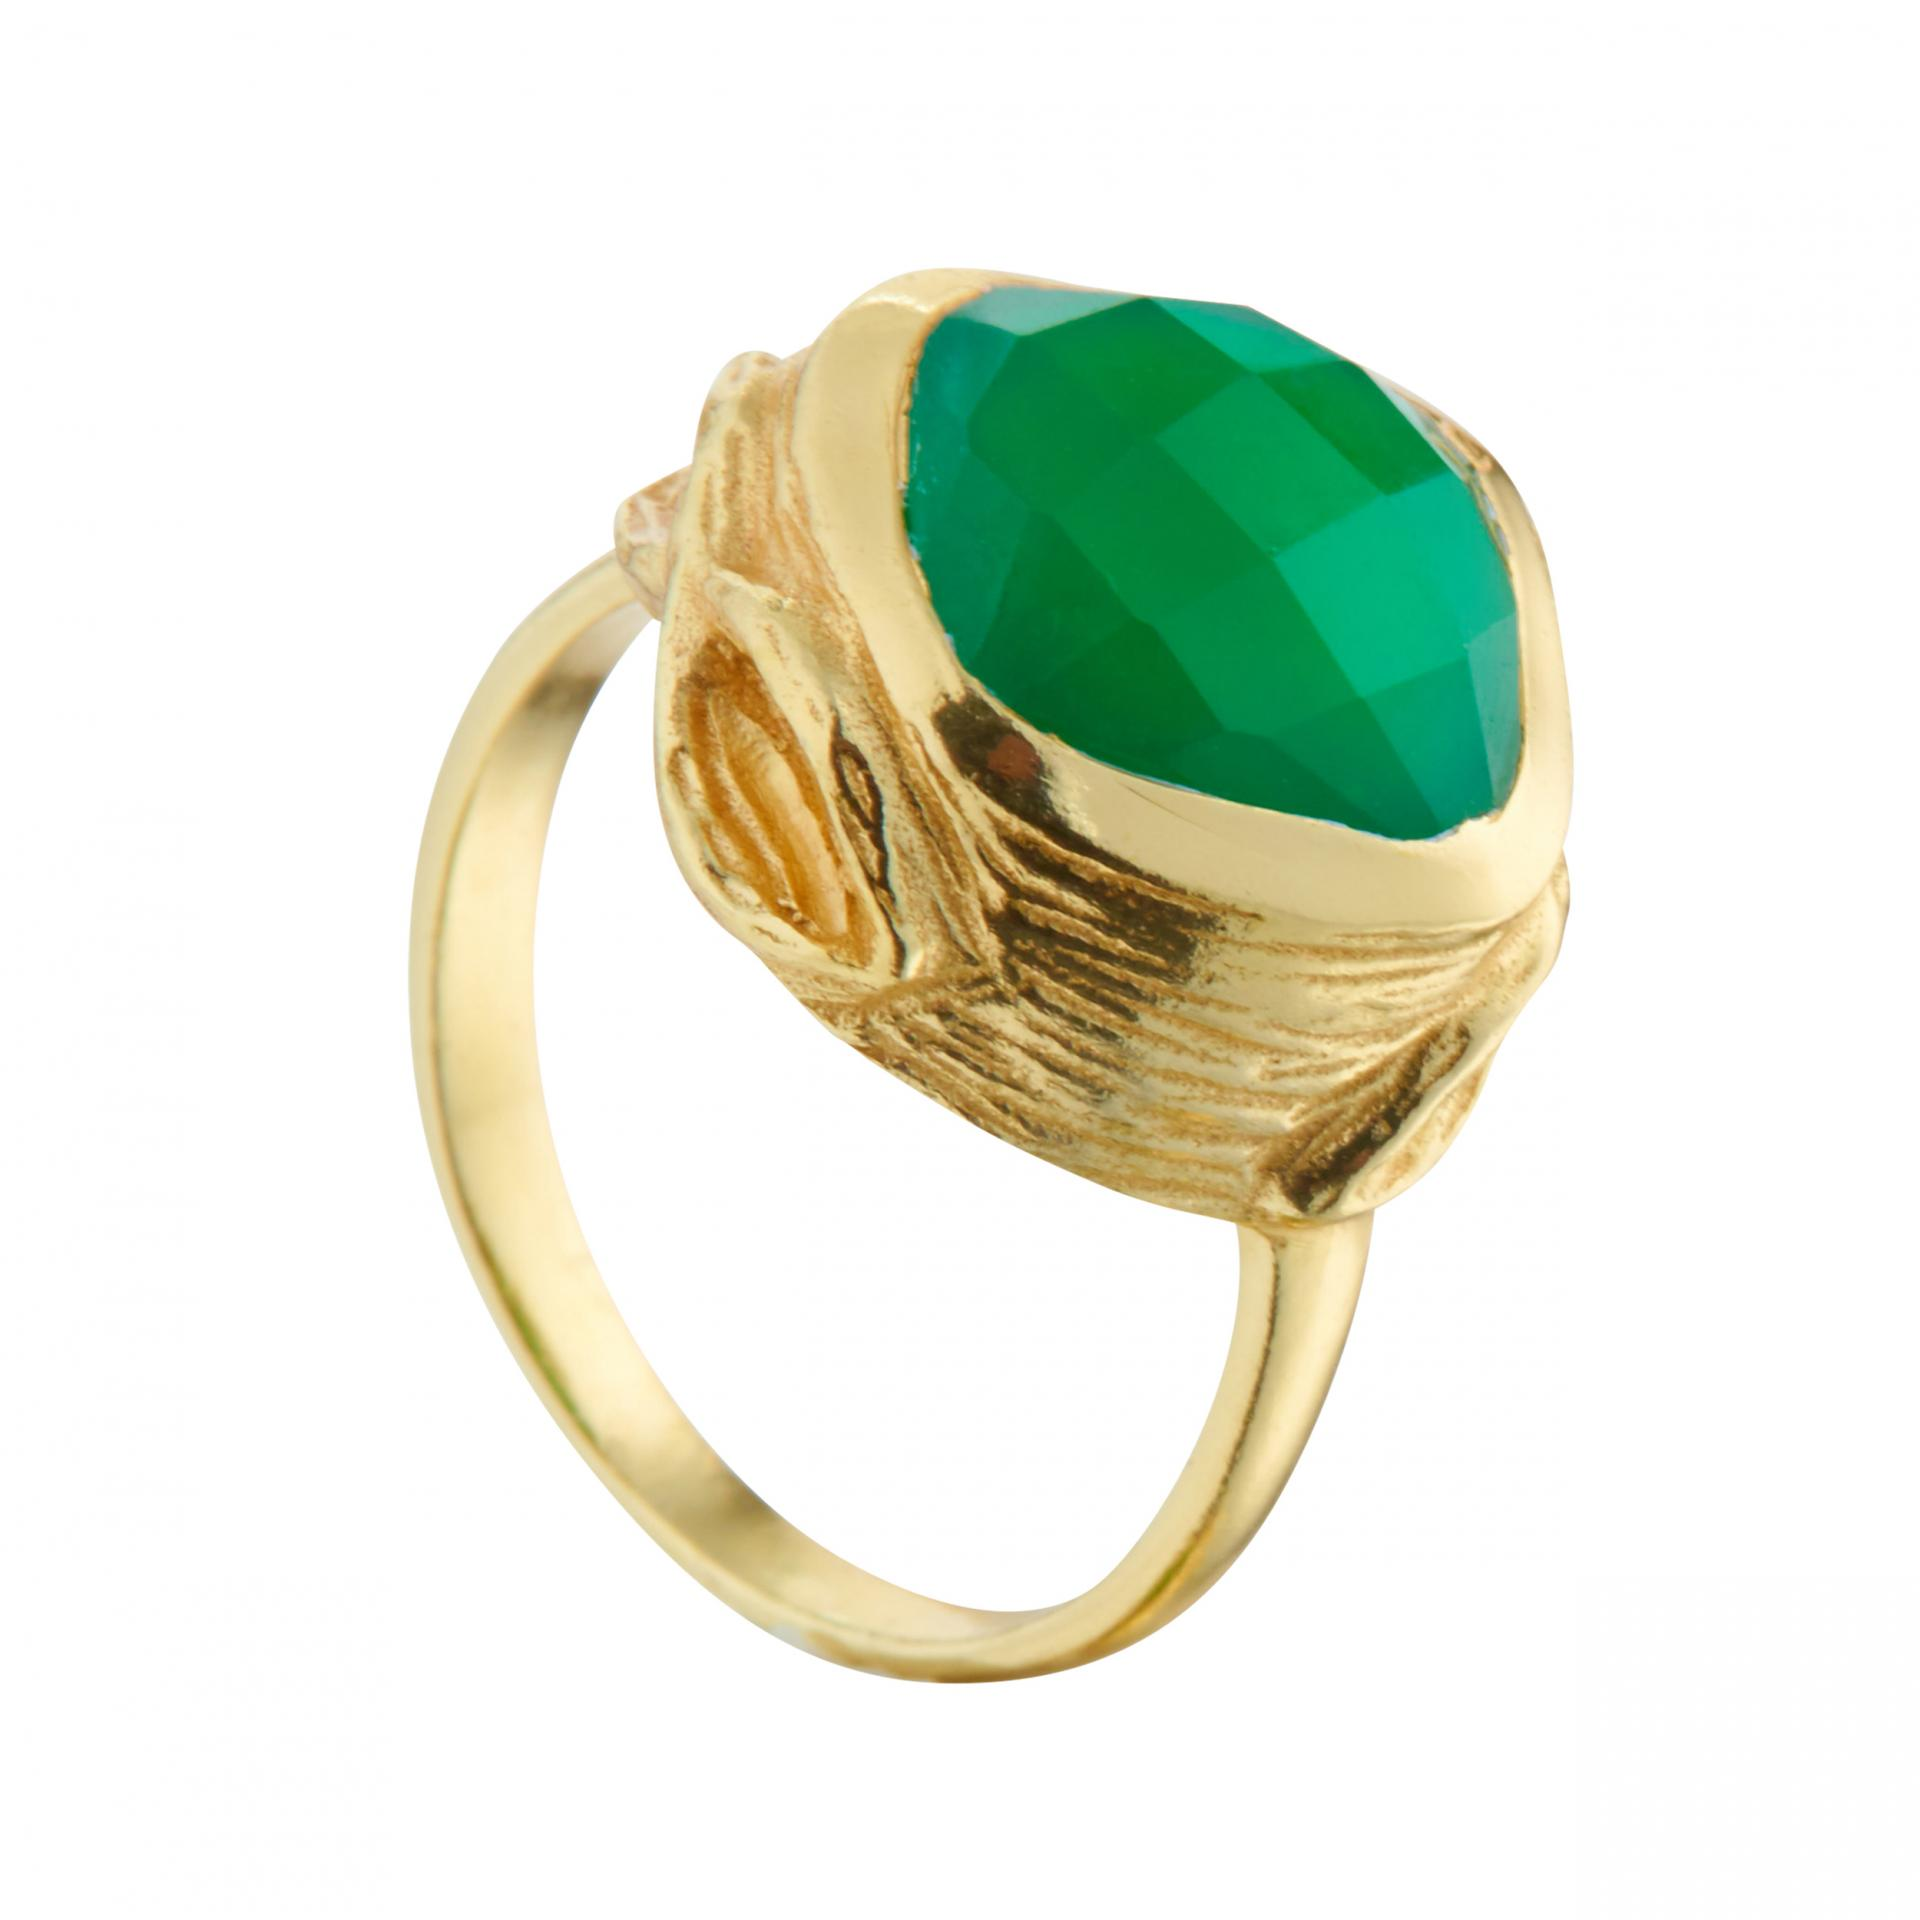 Juvi Designs  Oyster Ring in Gold Vermeil and Green Onyx